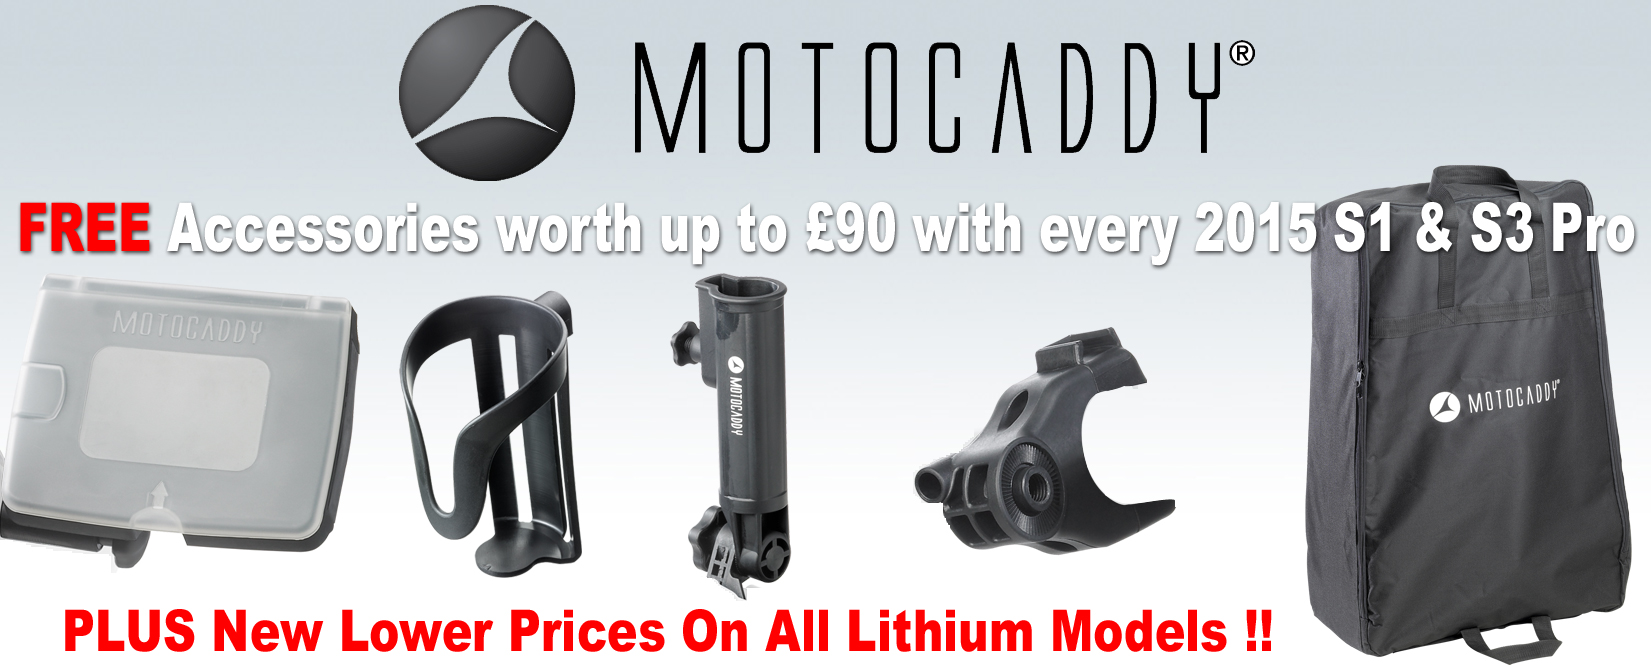 Motocaddy Free accessory pack 2015